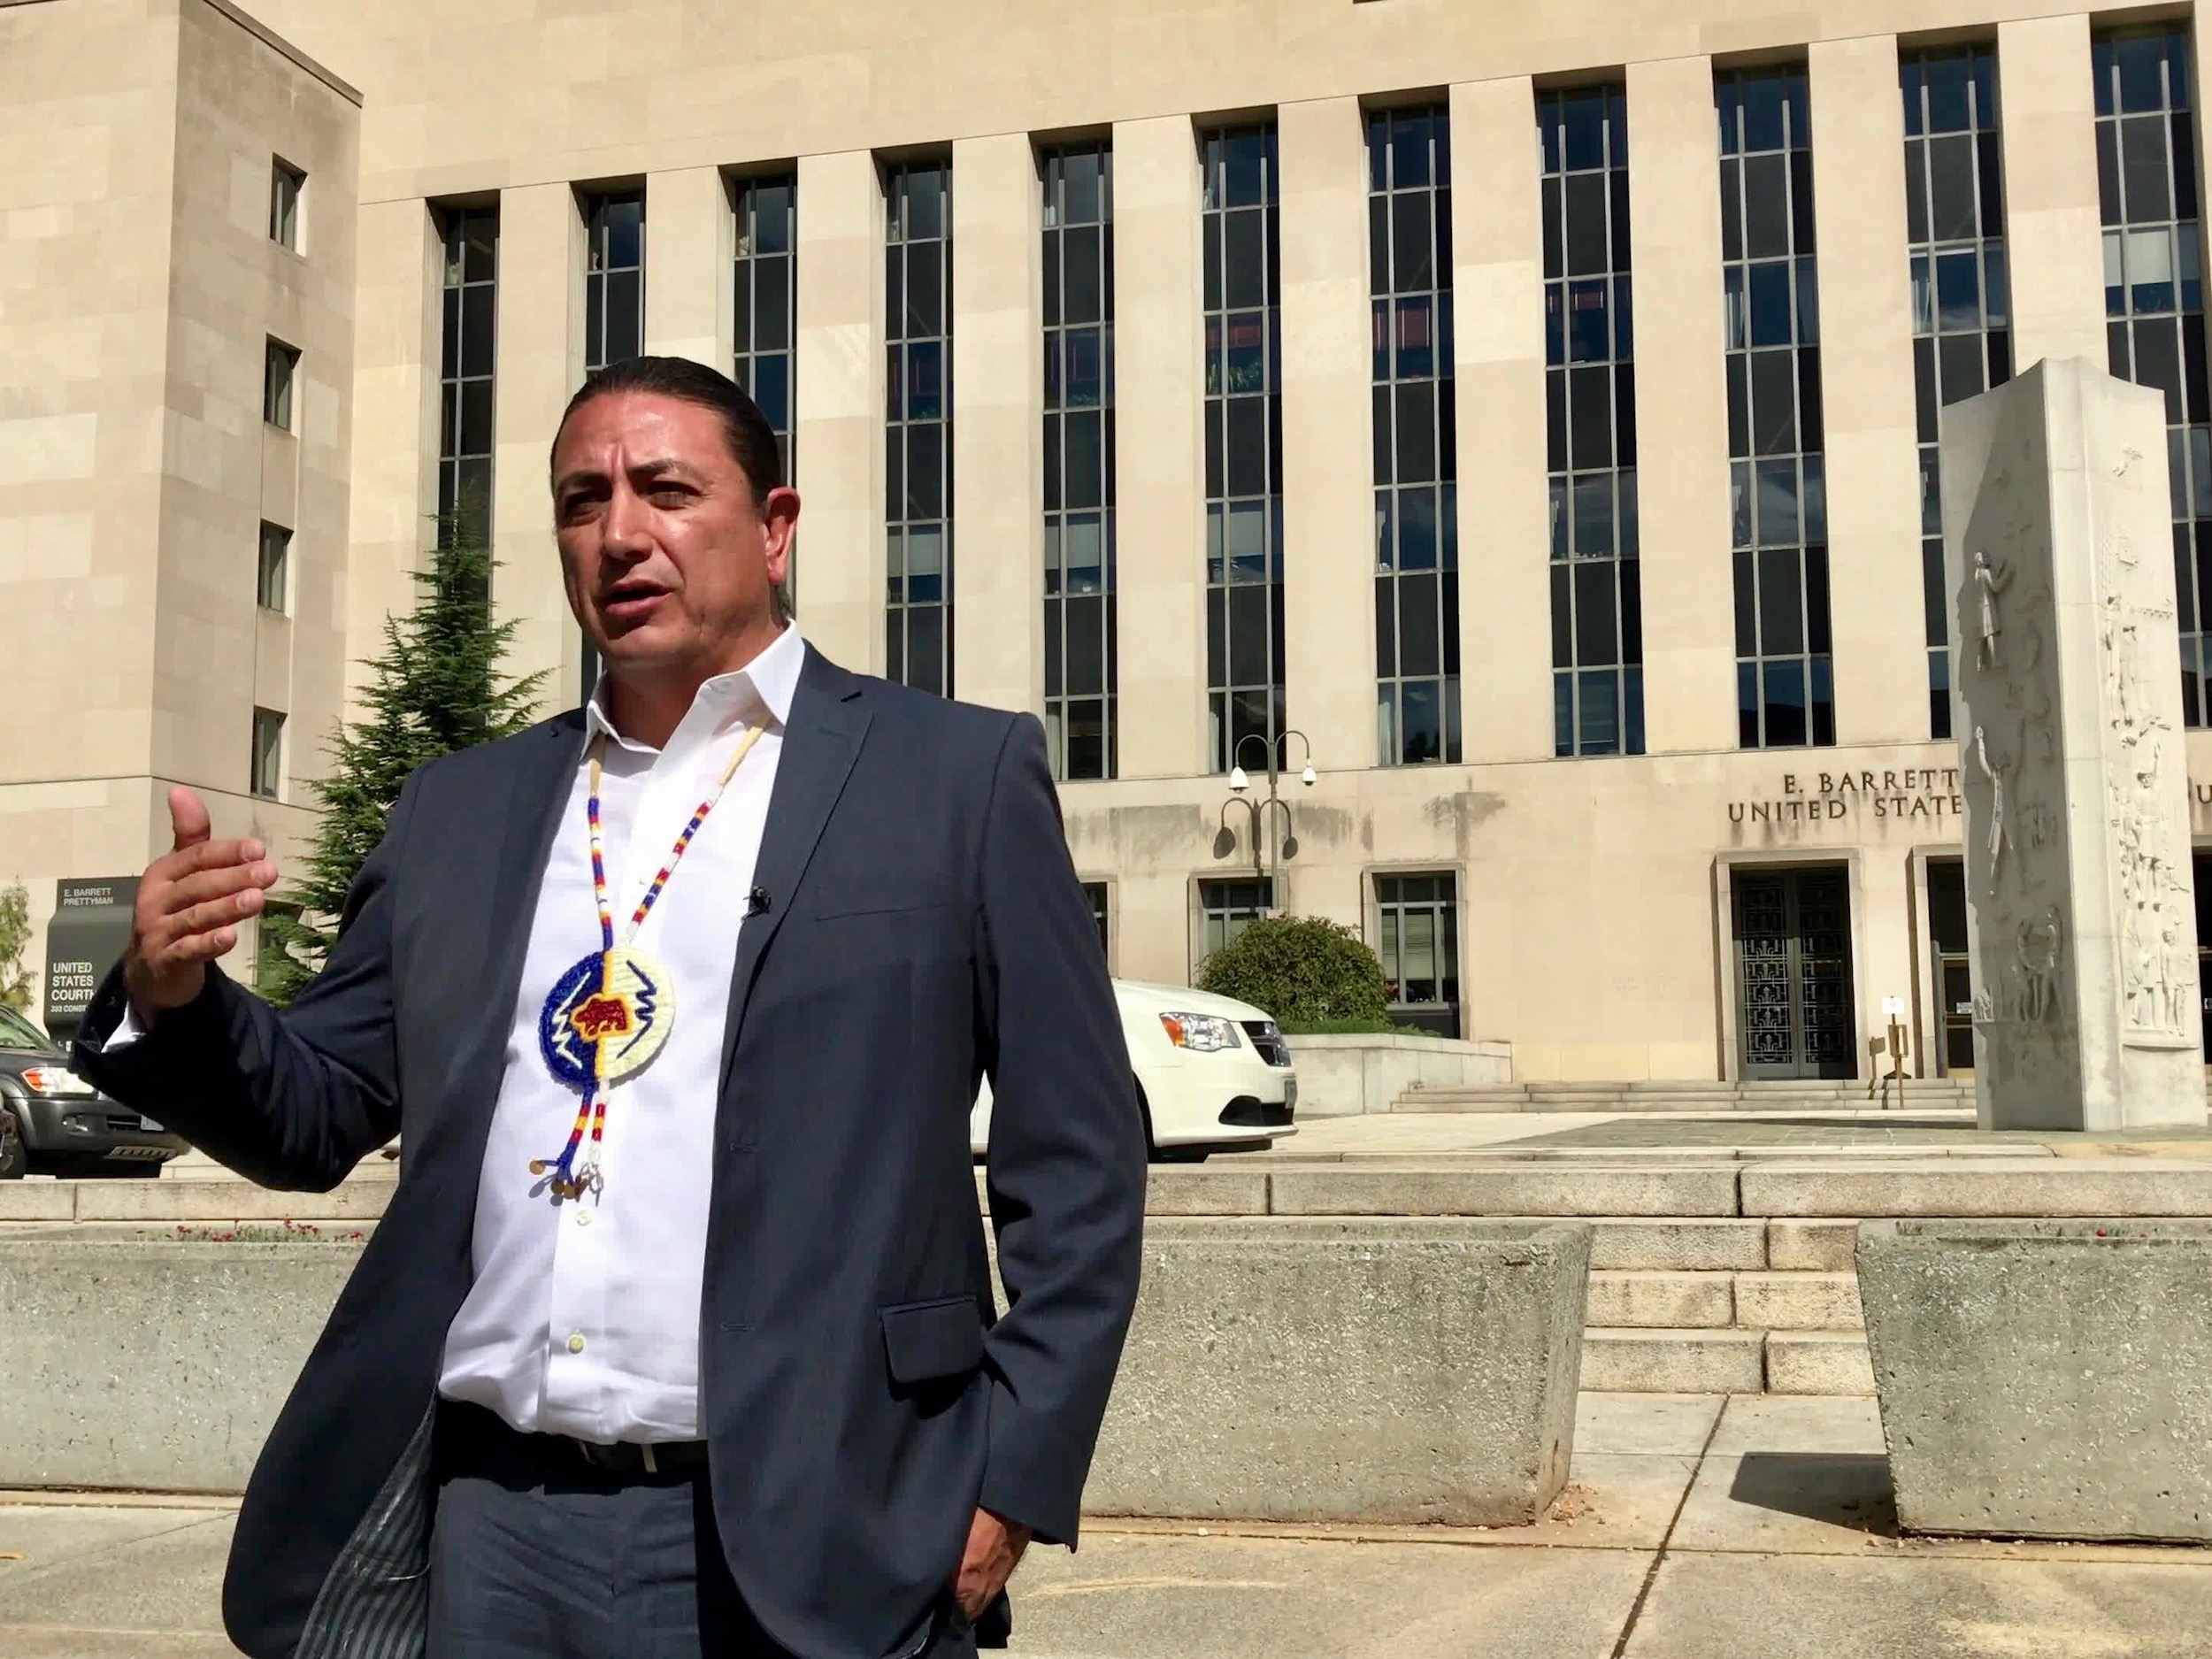 Judge declines to block publication of Dakota Access Pipeline notice